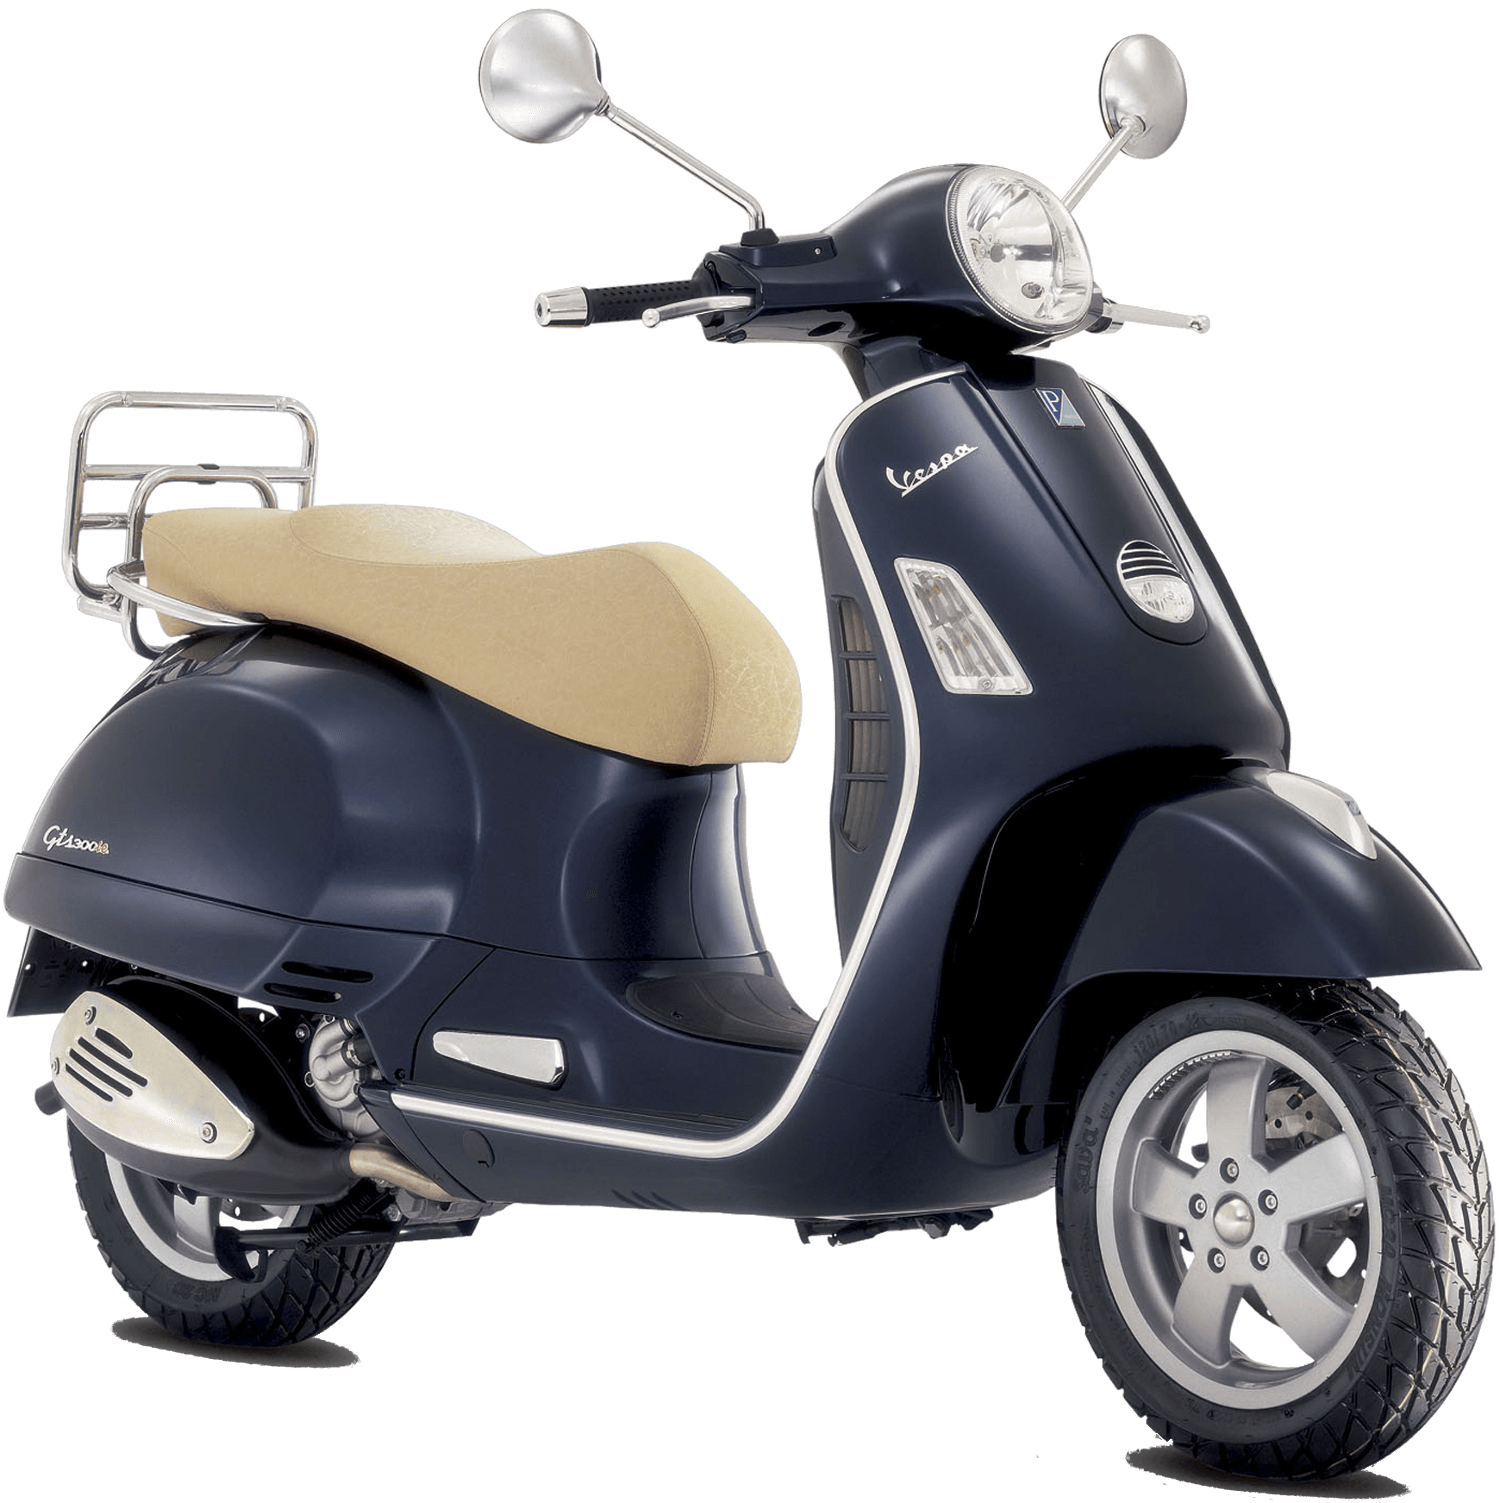 Scooter HD PNG - 120103